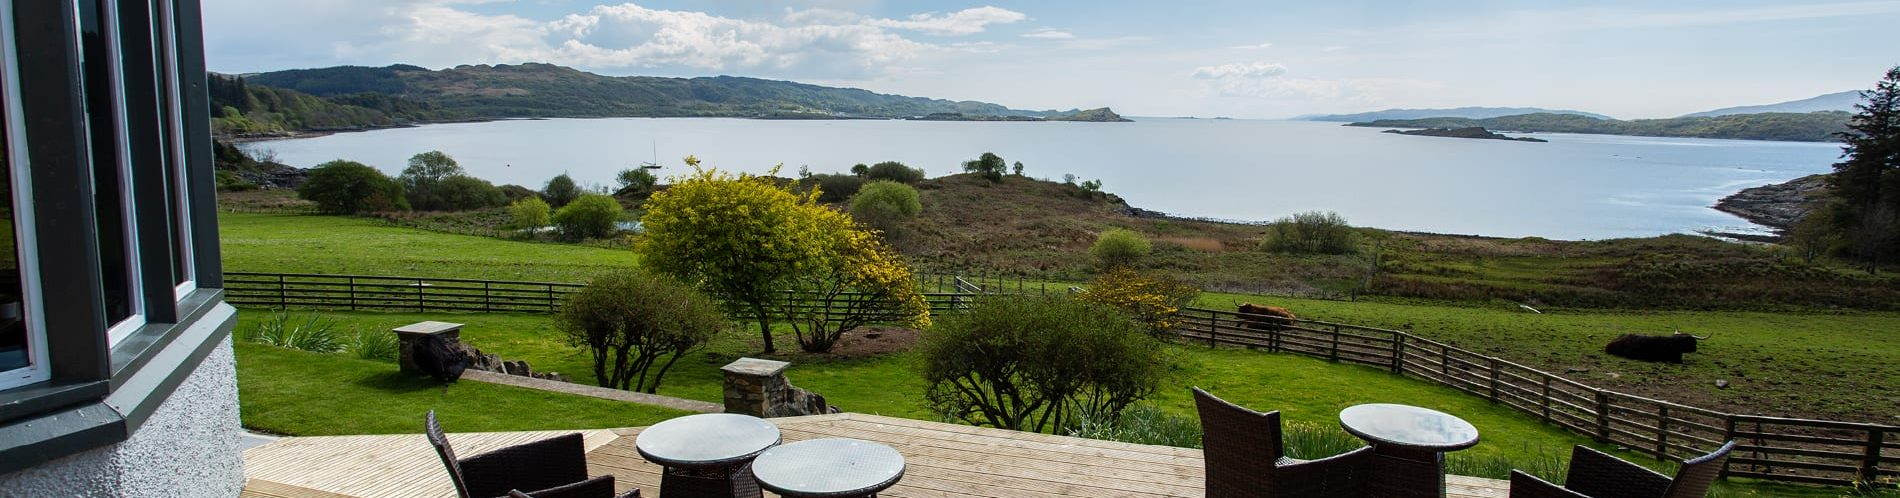 View from Loch Melfort Hotel